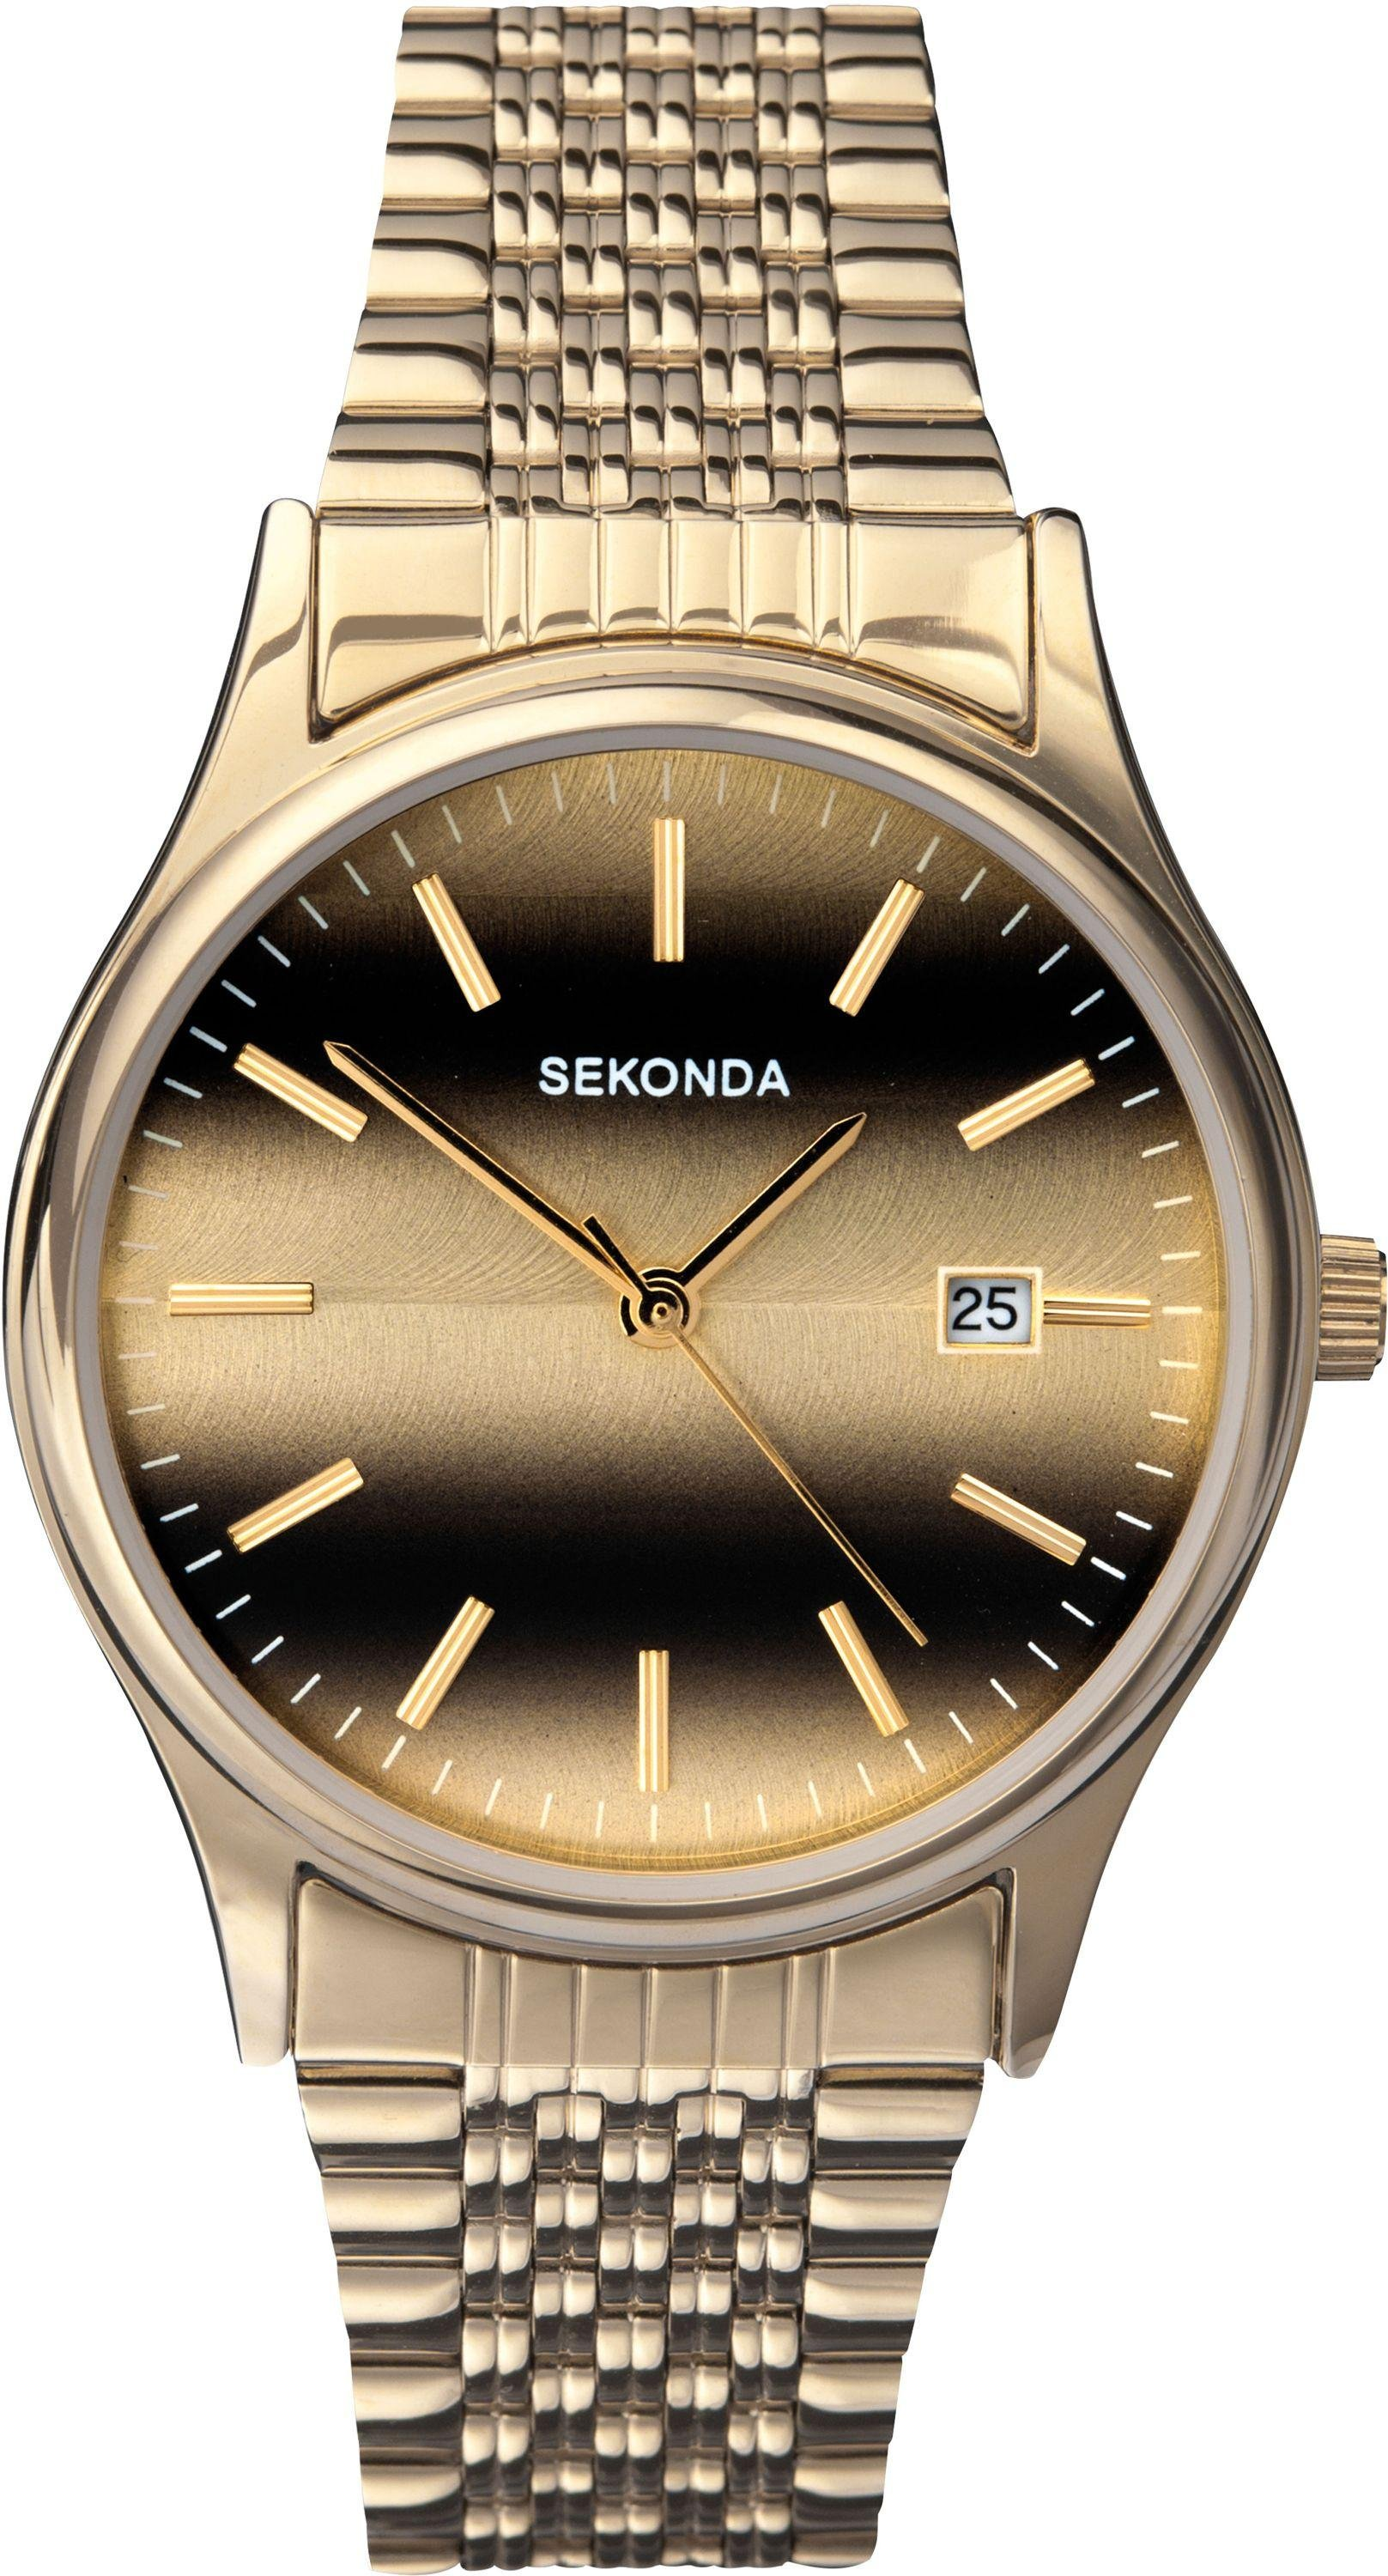 Sekonda: Find offers online and compare prices at Wunderstore